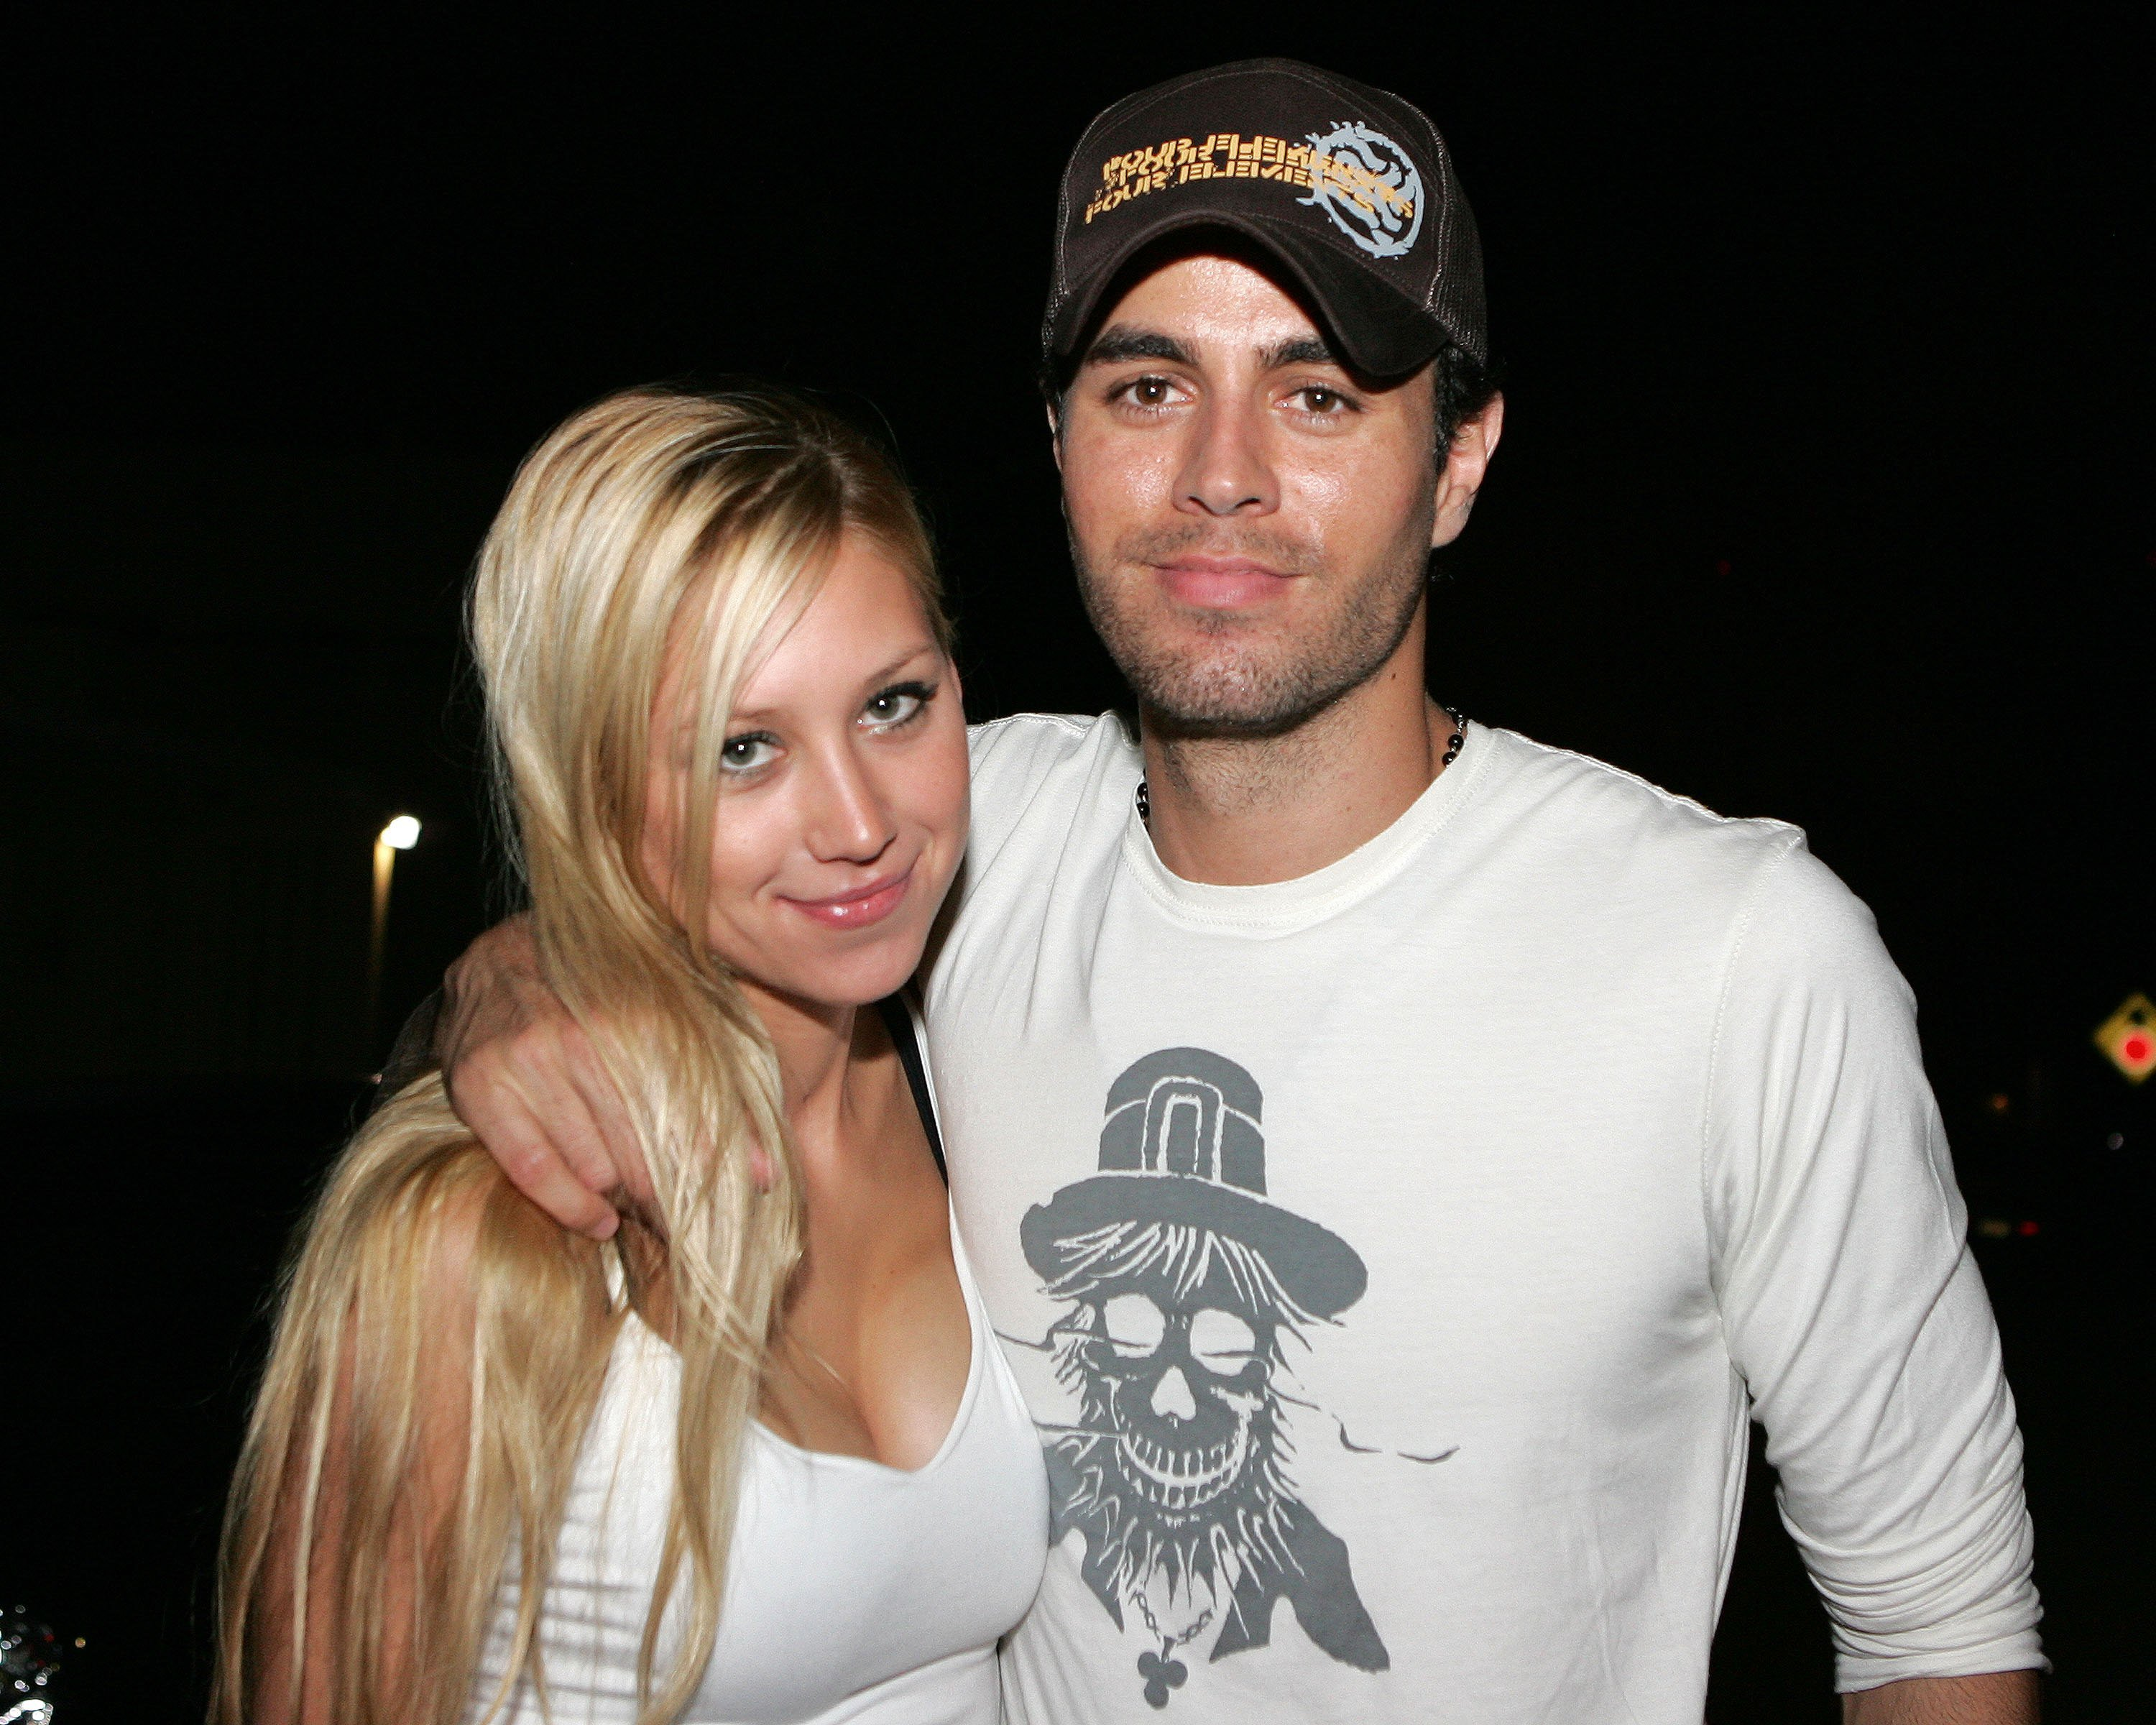 Anna Kournikova and singer Enrique Iglesias leave Big Pink restaurant on June 16, 2006, in Miami, Florida. | Source: Getty Images.